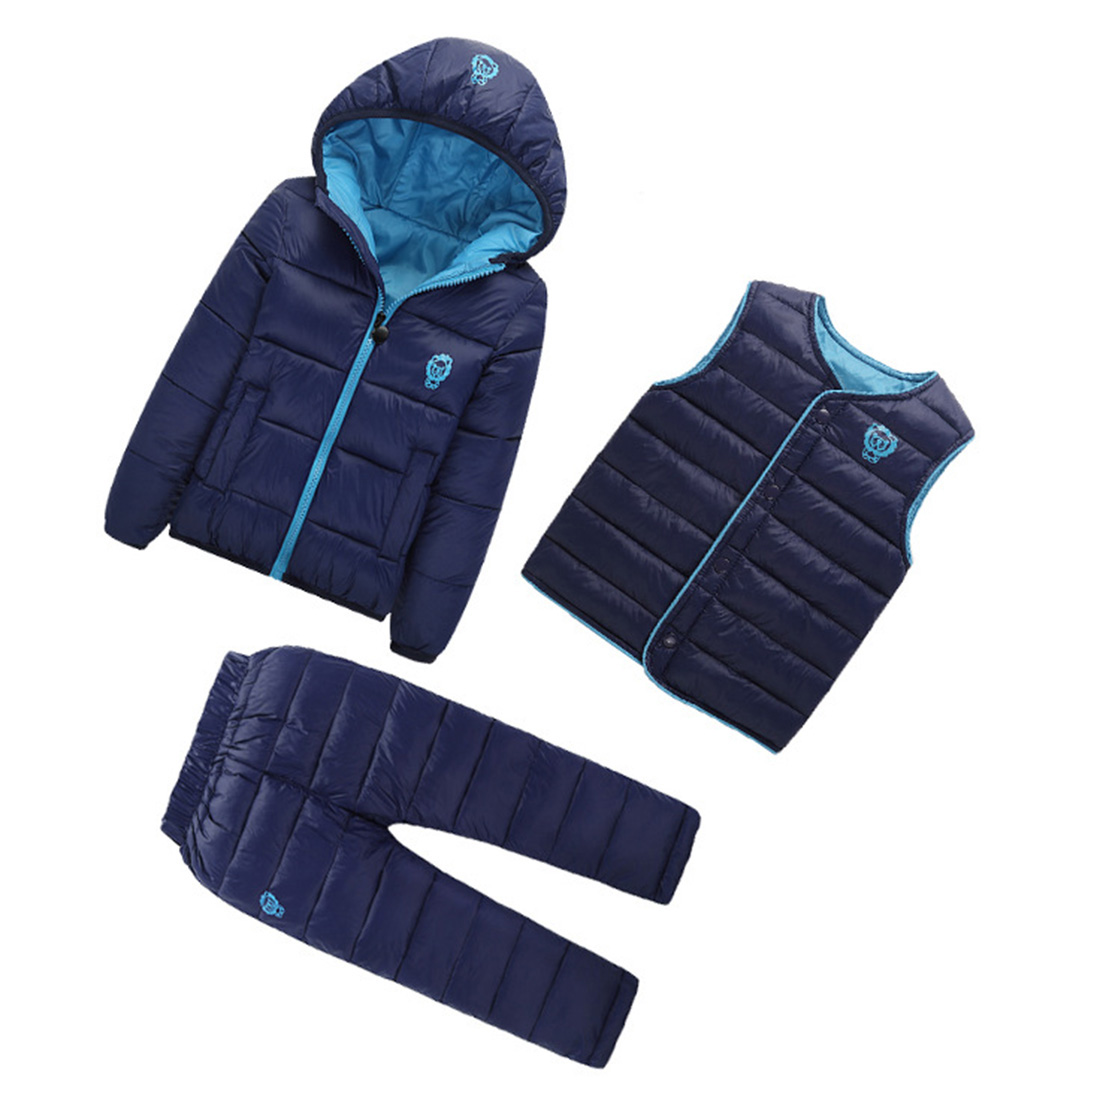 3 Pcs Lot Winter Baby Girls Boys Clothes Sets Children Down Cotton padded Coat 6 Colors 6 Size 2017 winter children cotton padded parkas clothes baby girls